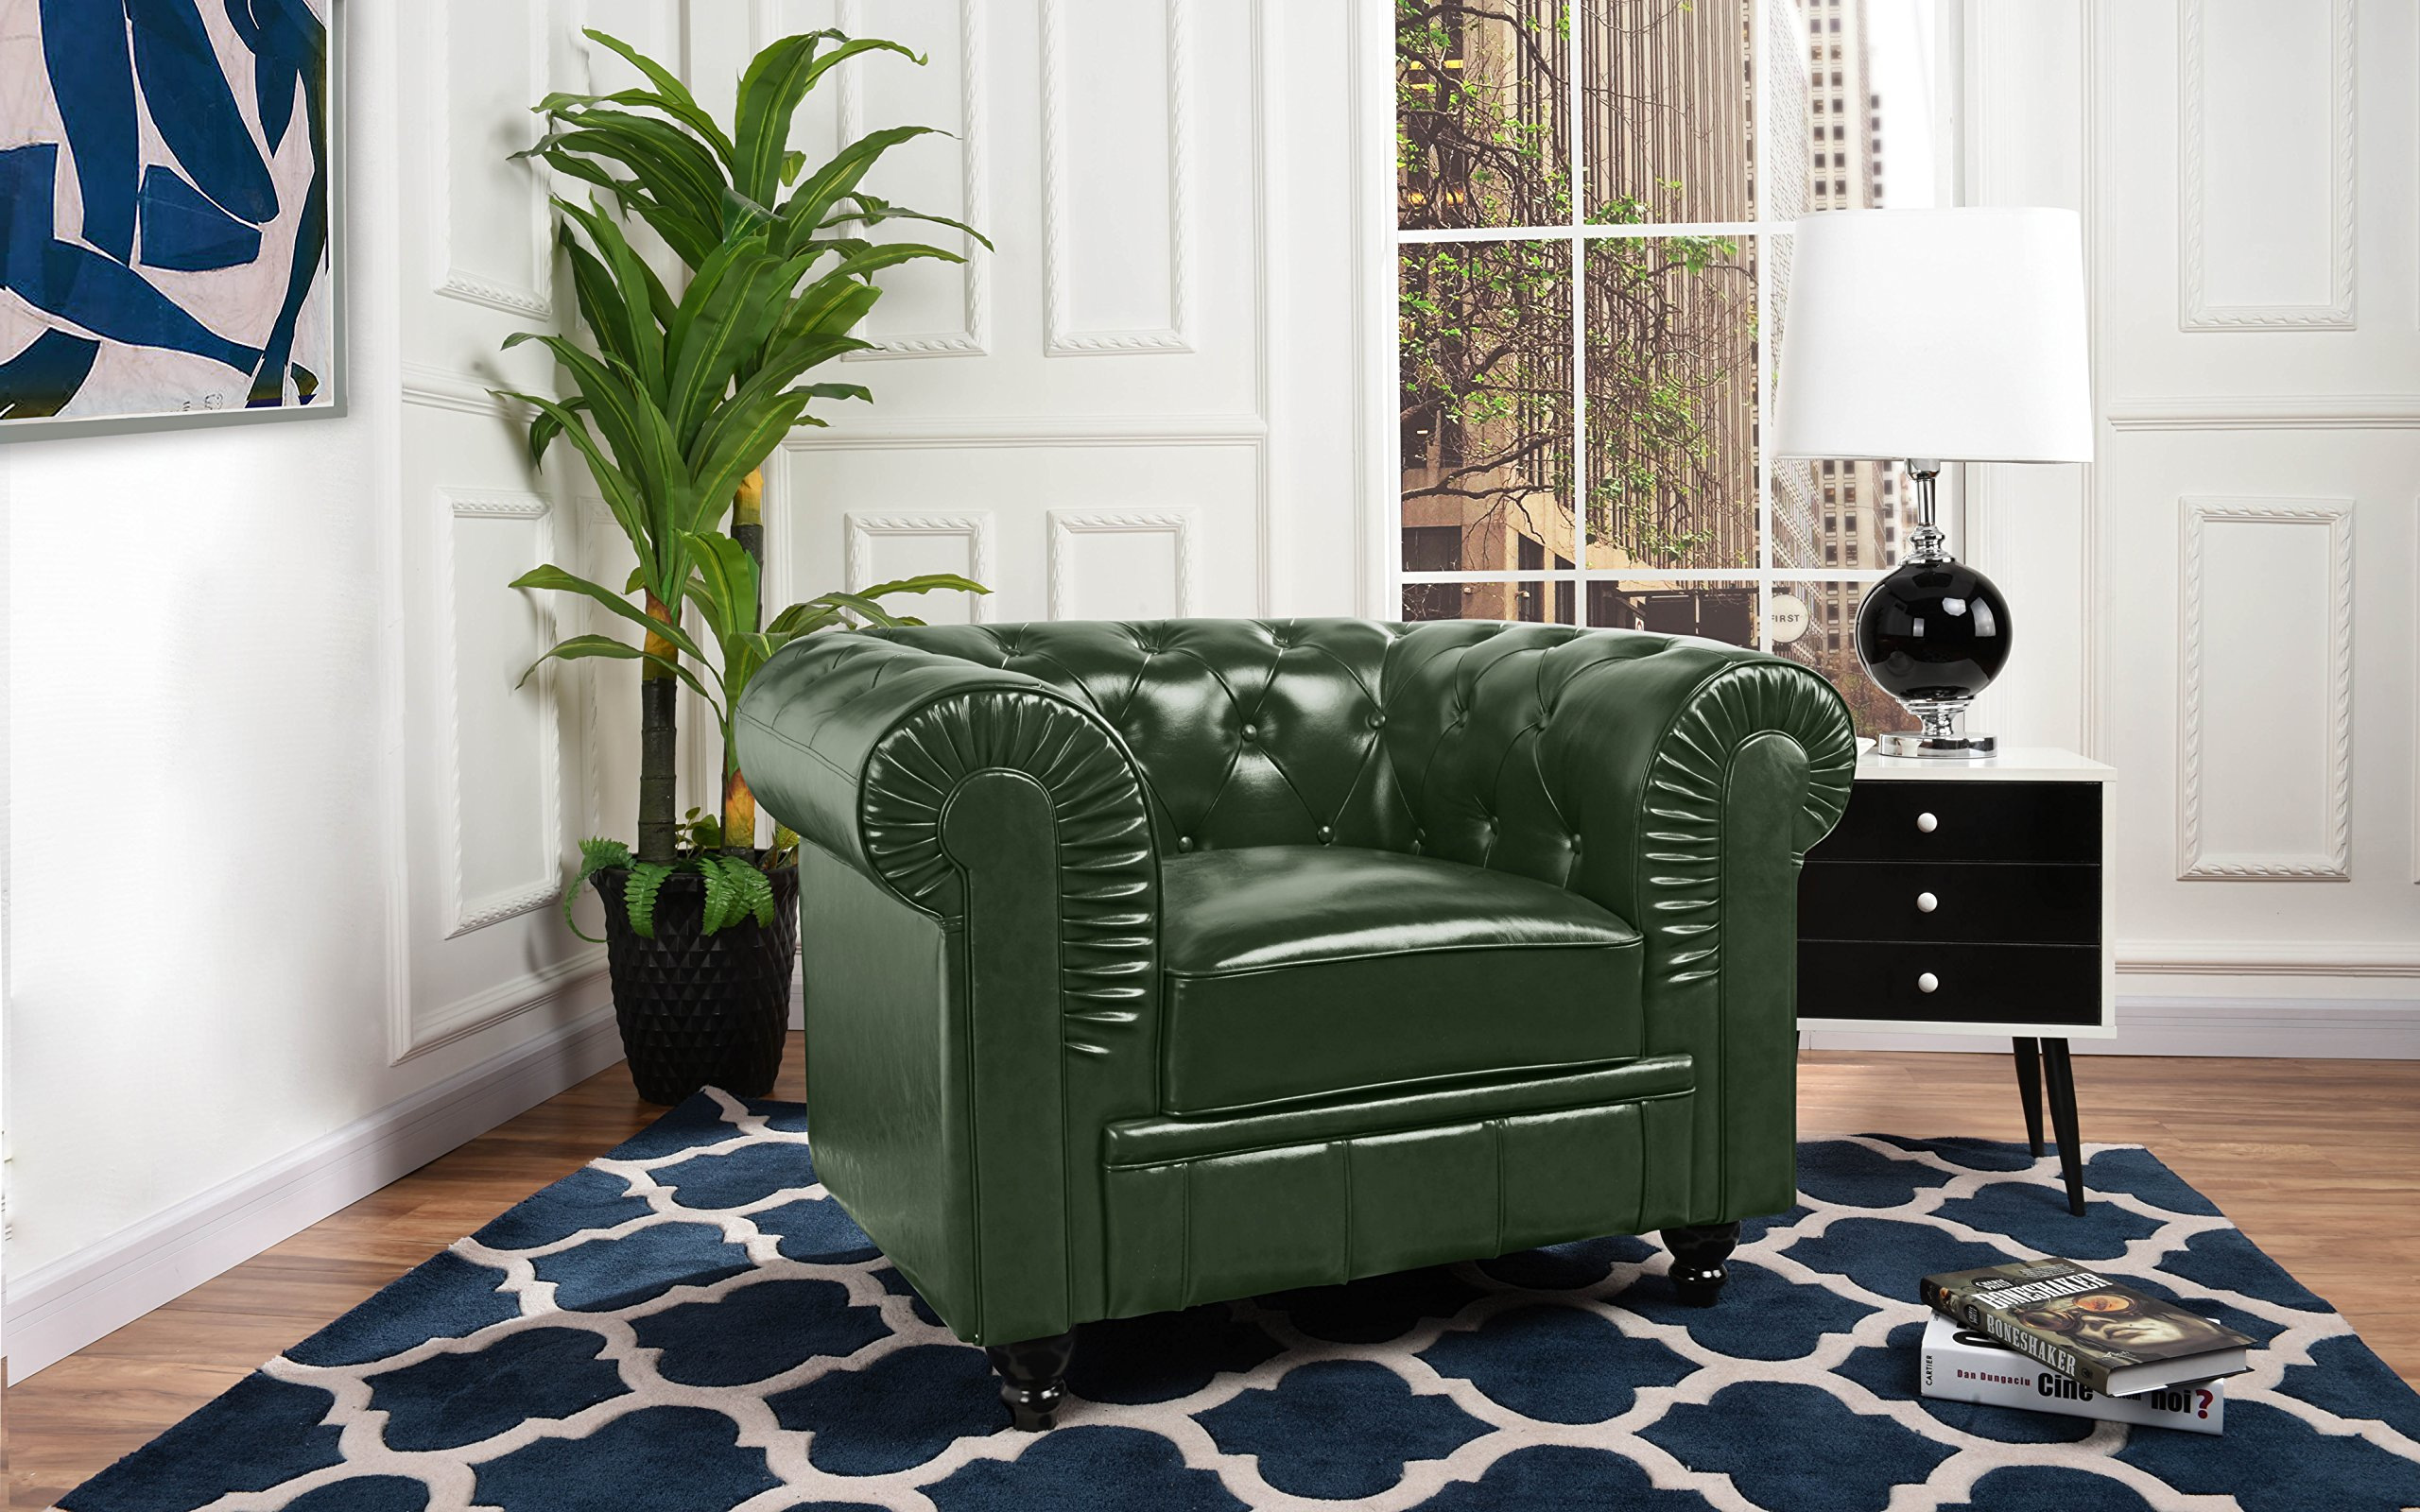 Details About Modern Classic Green Leather Large Chesterfield Scroll Arm  Tufted Single Chair